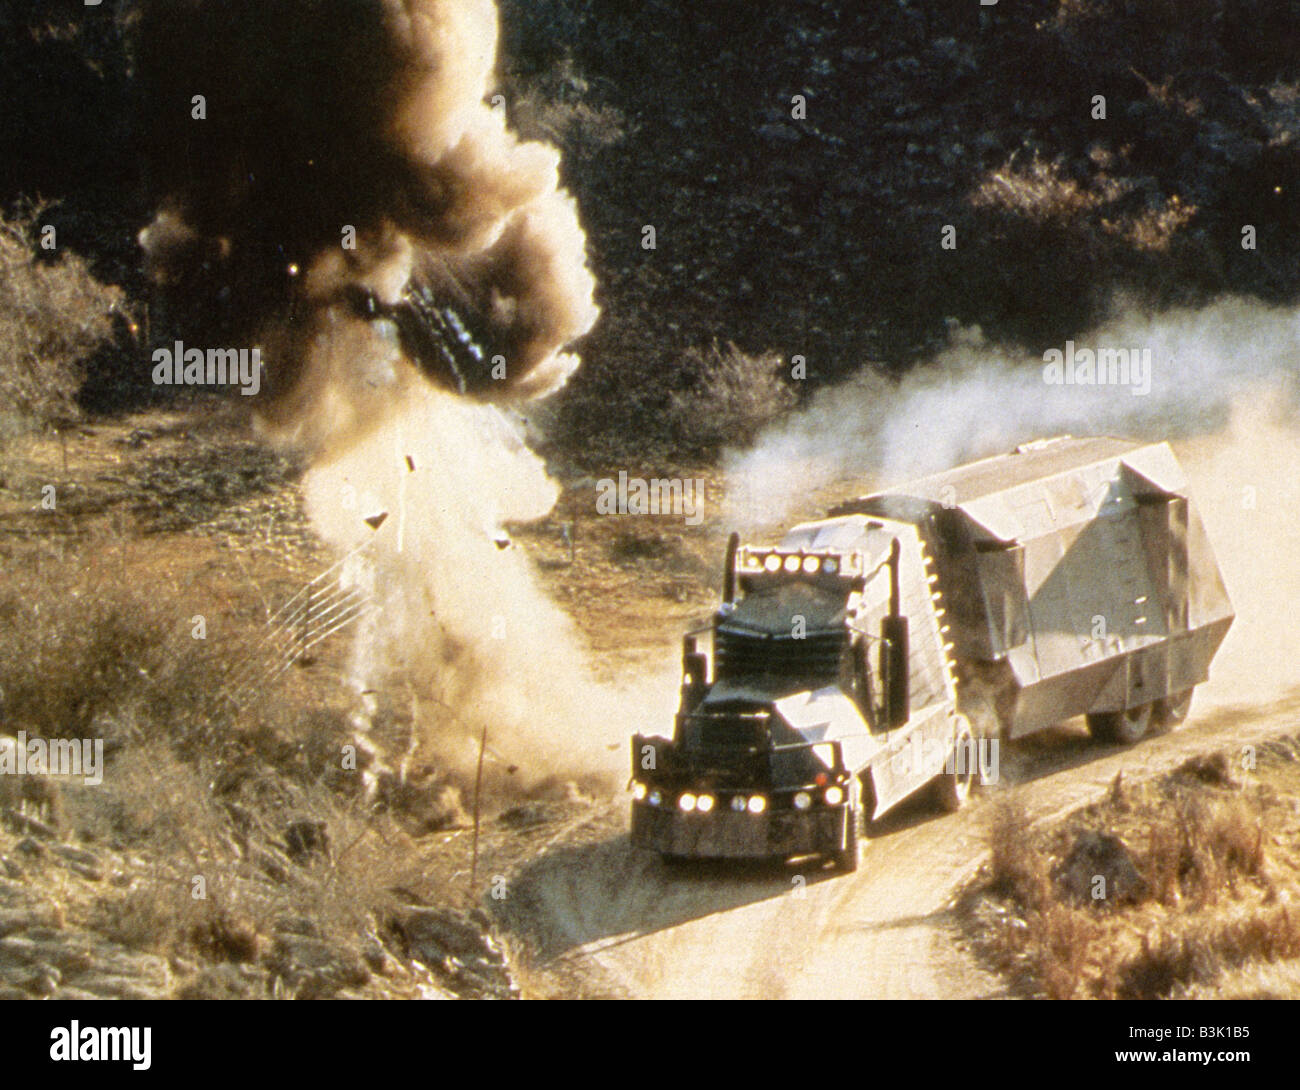 BATTLETRUCK 1981 New Zealand film aka Warlords of the 21st Century - Stock Image